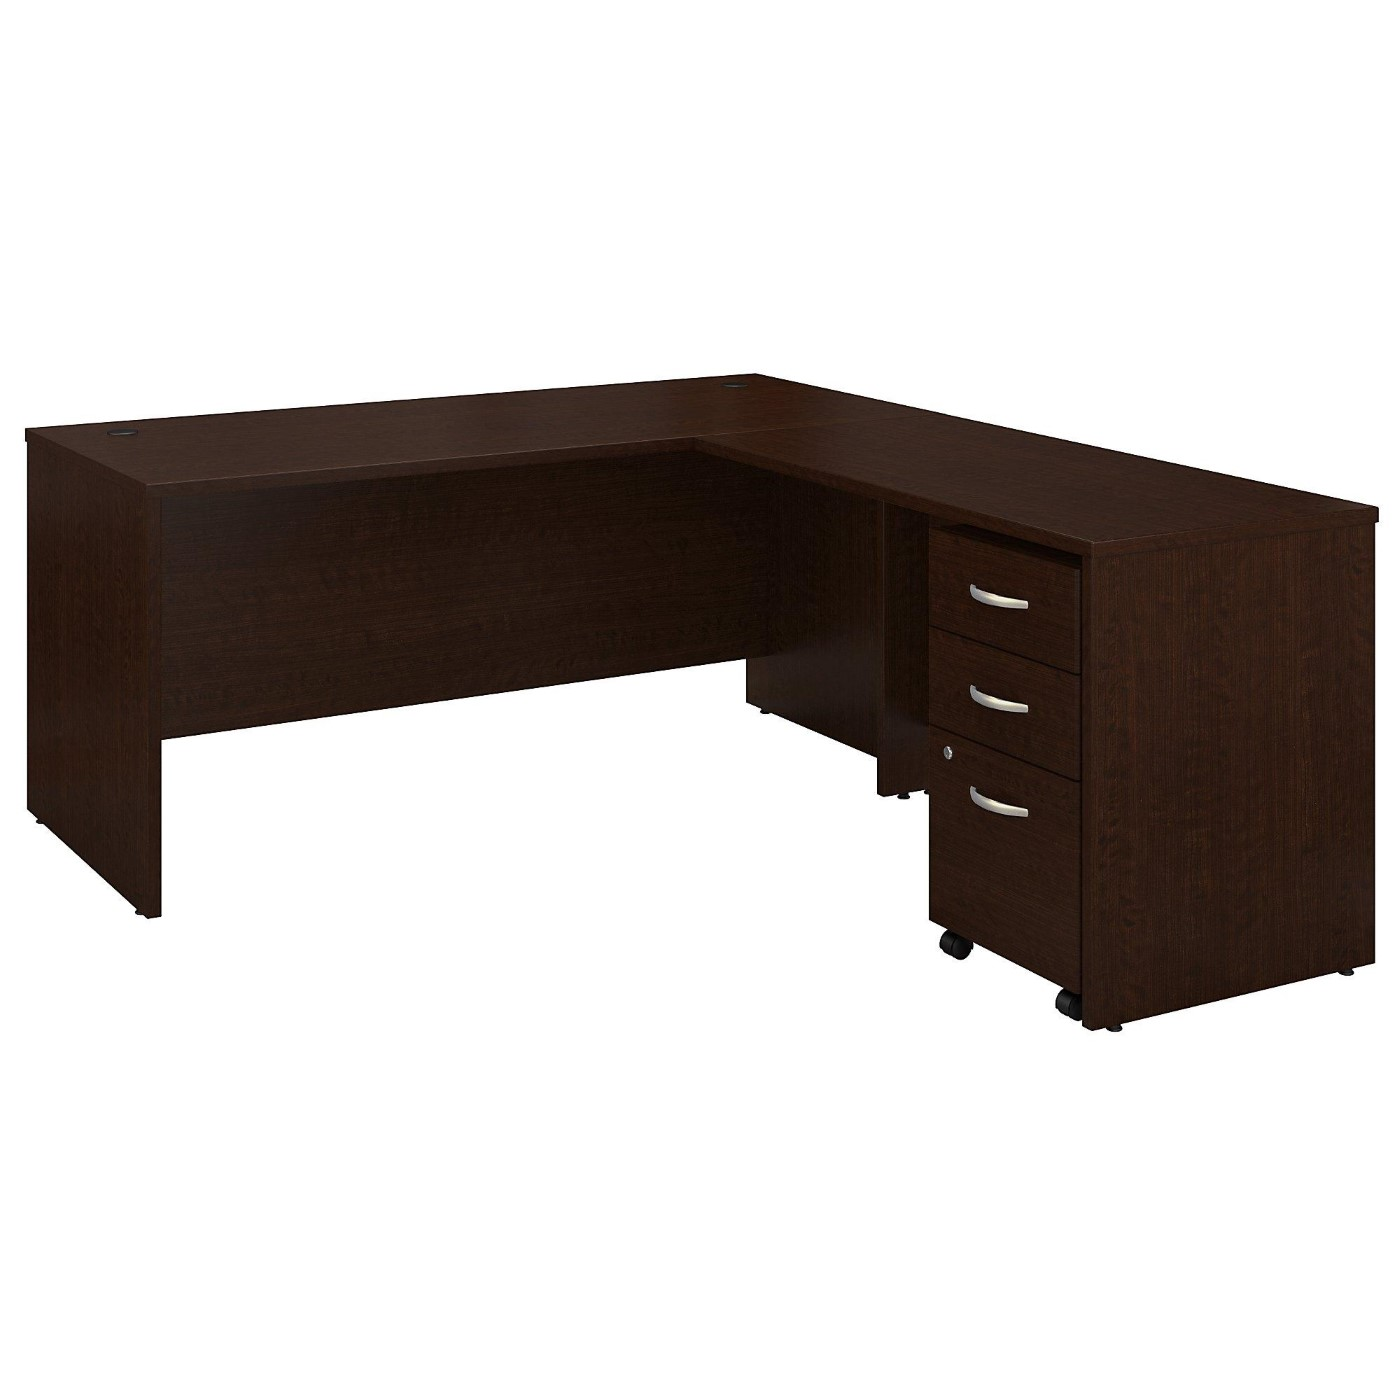 <font color=#c60><b>BUSH BUSINESS FURNITURE SERIES C 66W L SHAPED DESK WITH 48W RETURN AND MOBILE FILE CABINET. FREE SHIPPING</font></b></font></b>